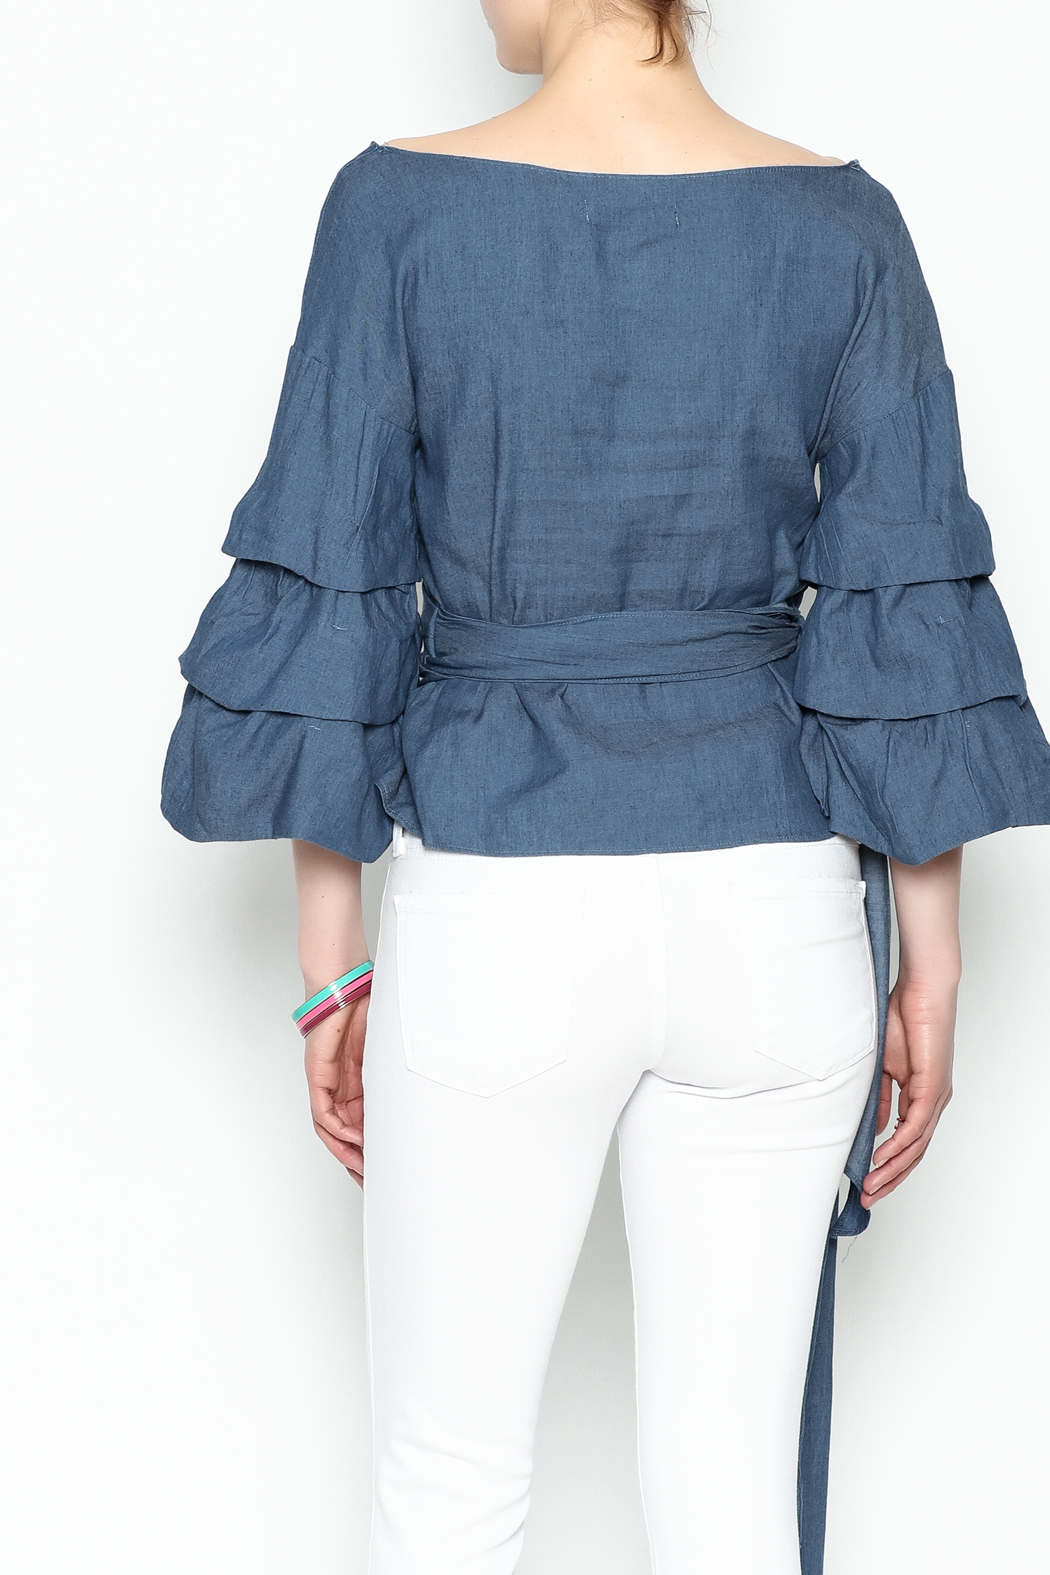 Do-Be Denim Wrap Top - Back Cropped Image